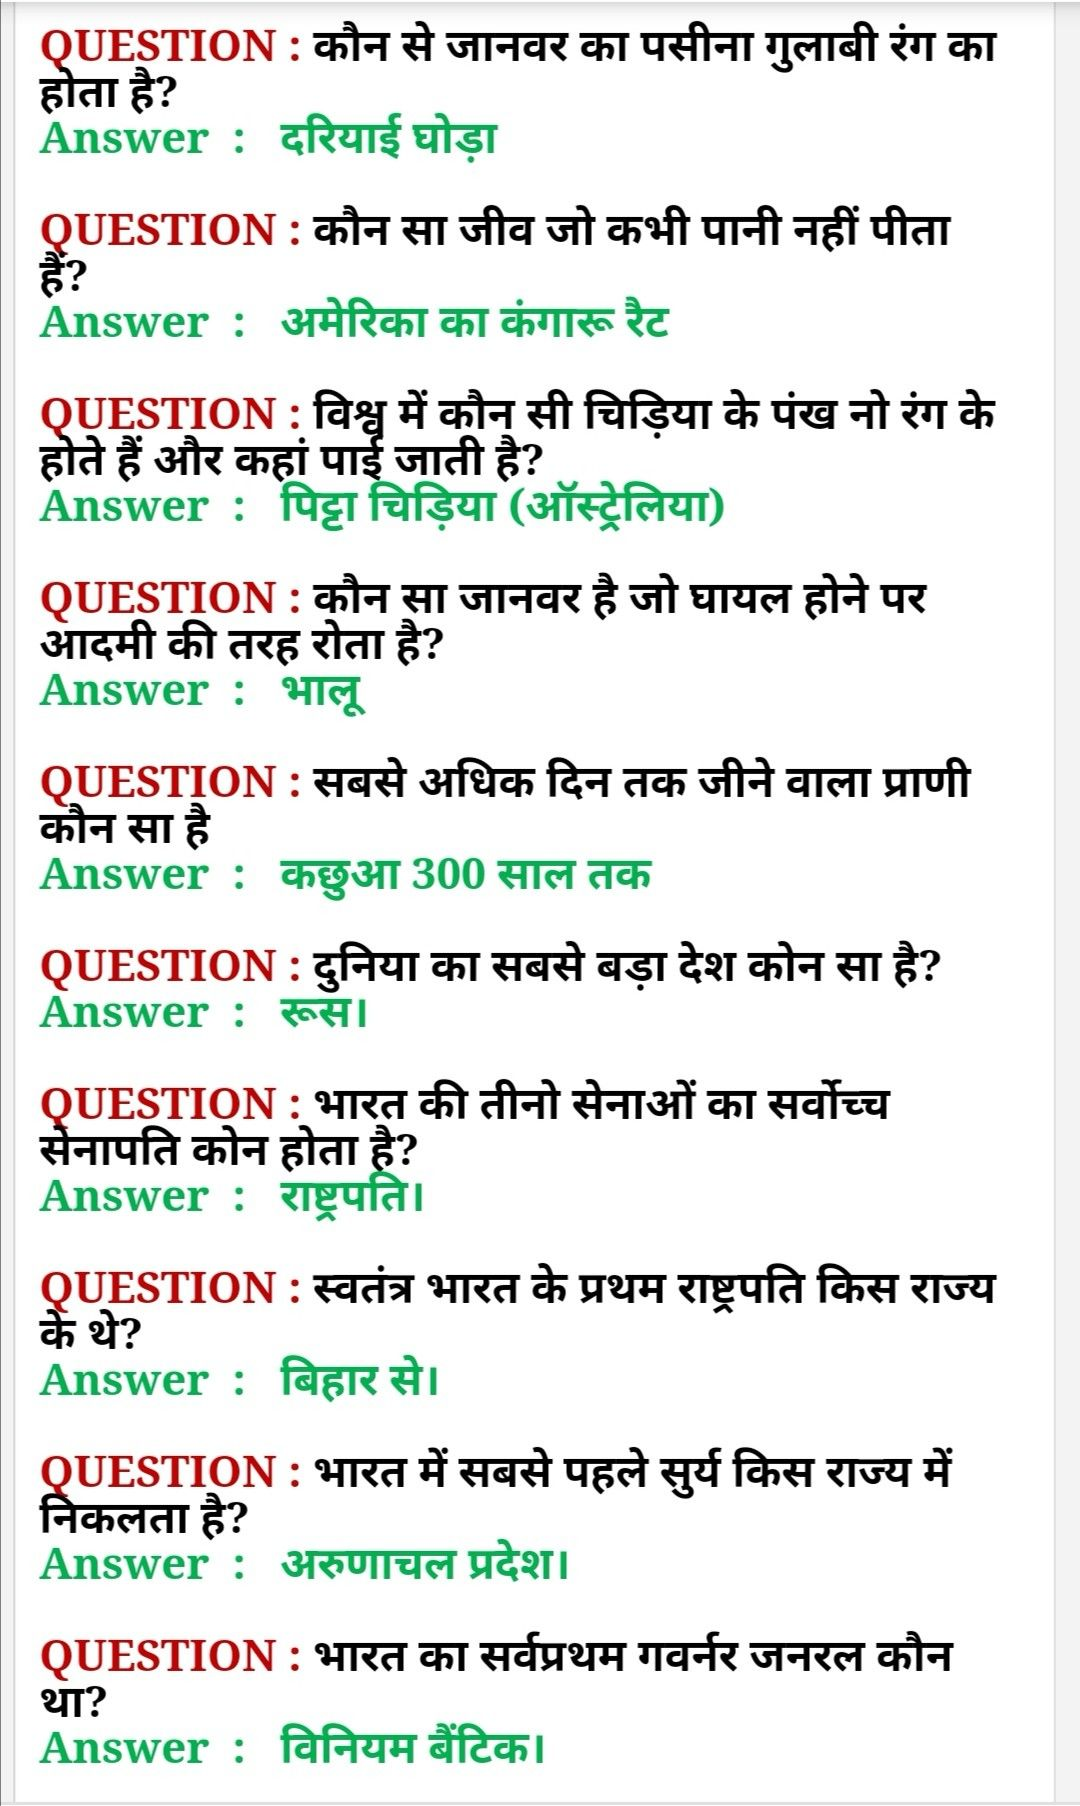 gk in hindi 2020 gk 2020 in hindi - सामान्य ज्ञान के प्रश्न in 2020 | This  or that questions, Gk questions and answers, Gk questions